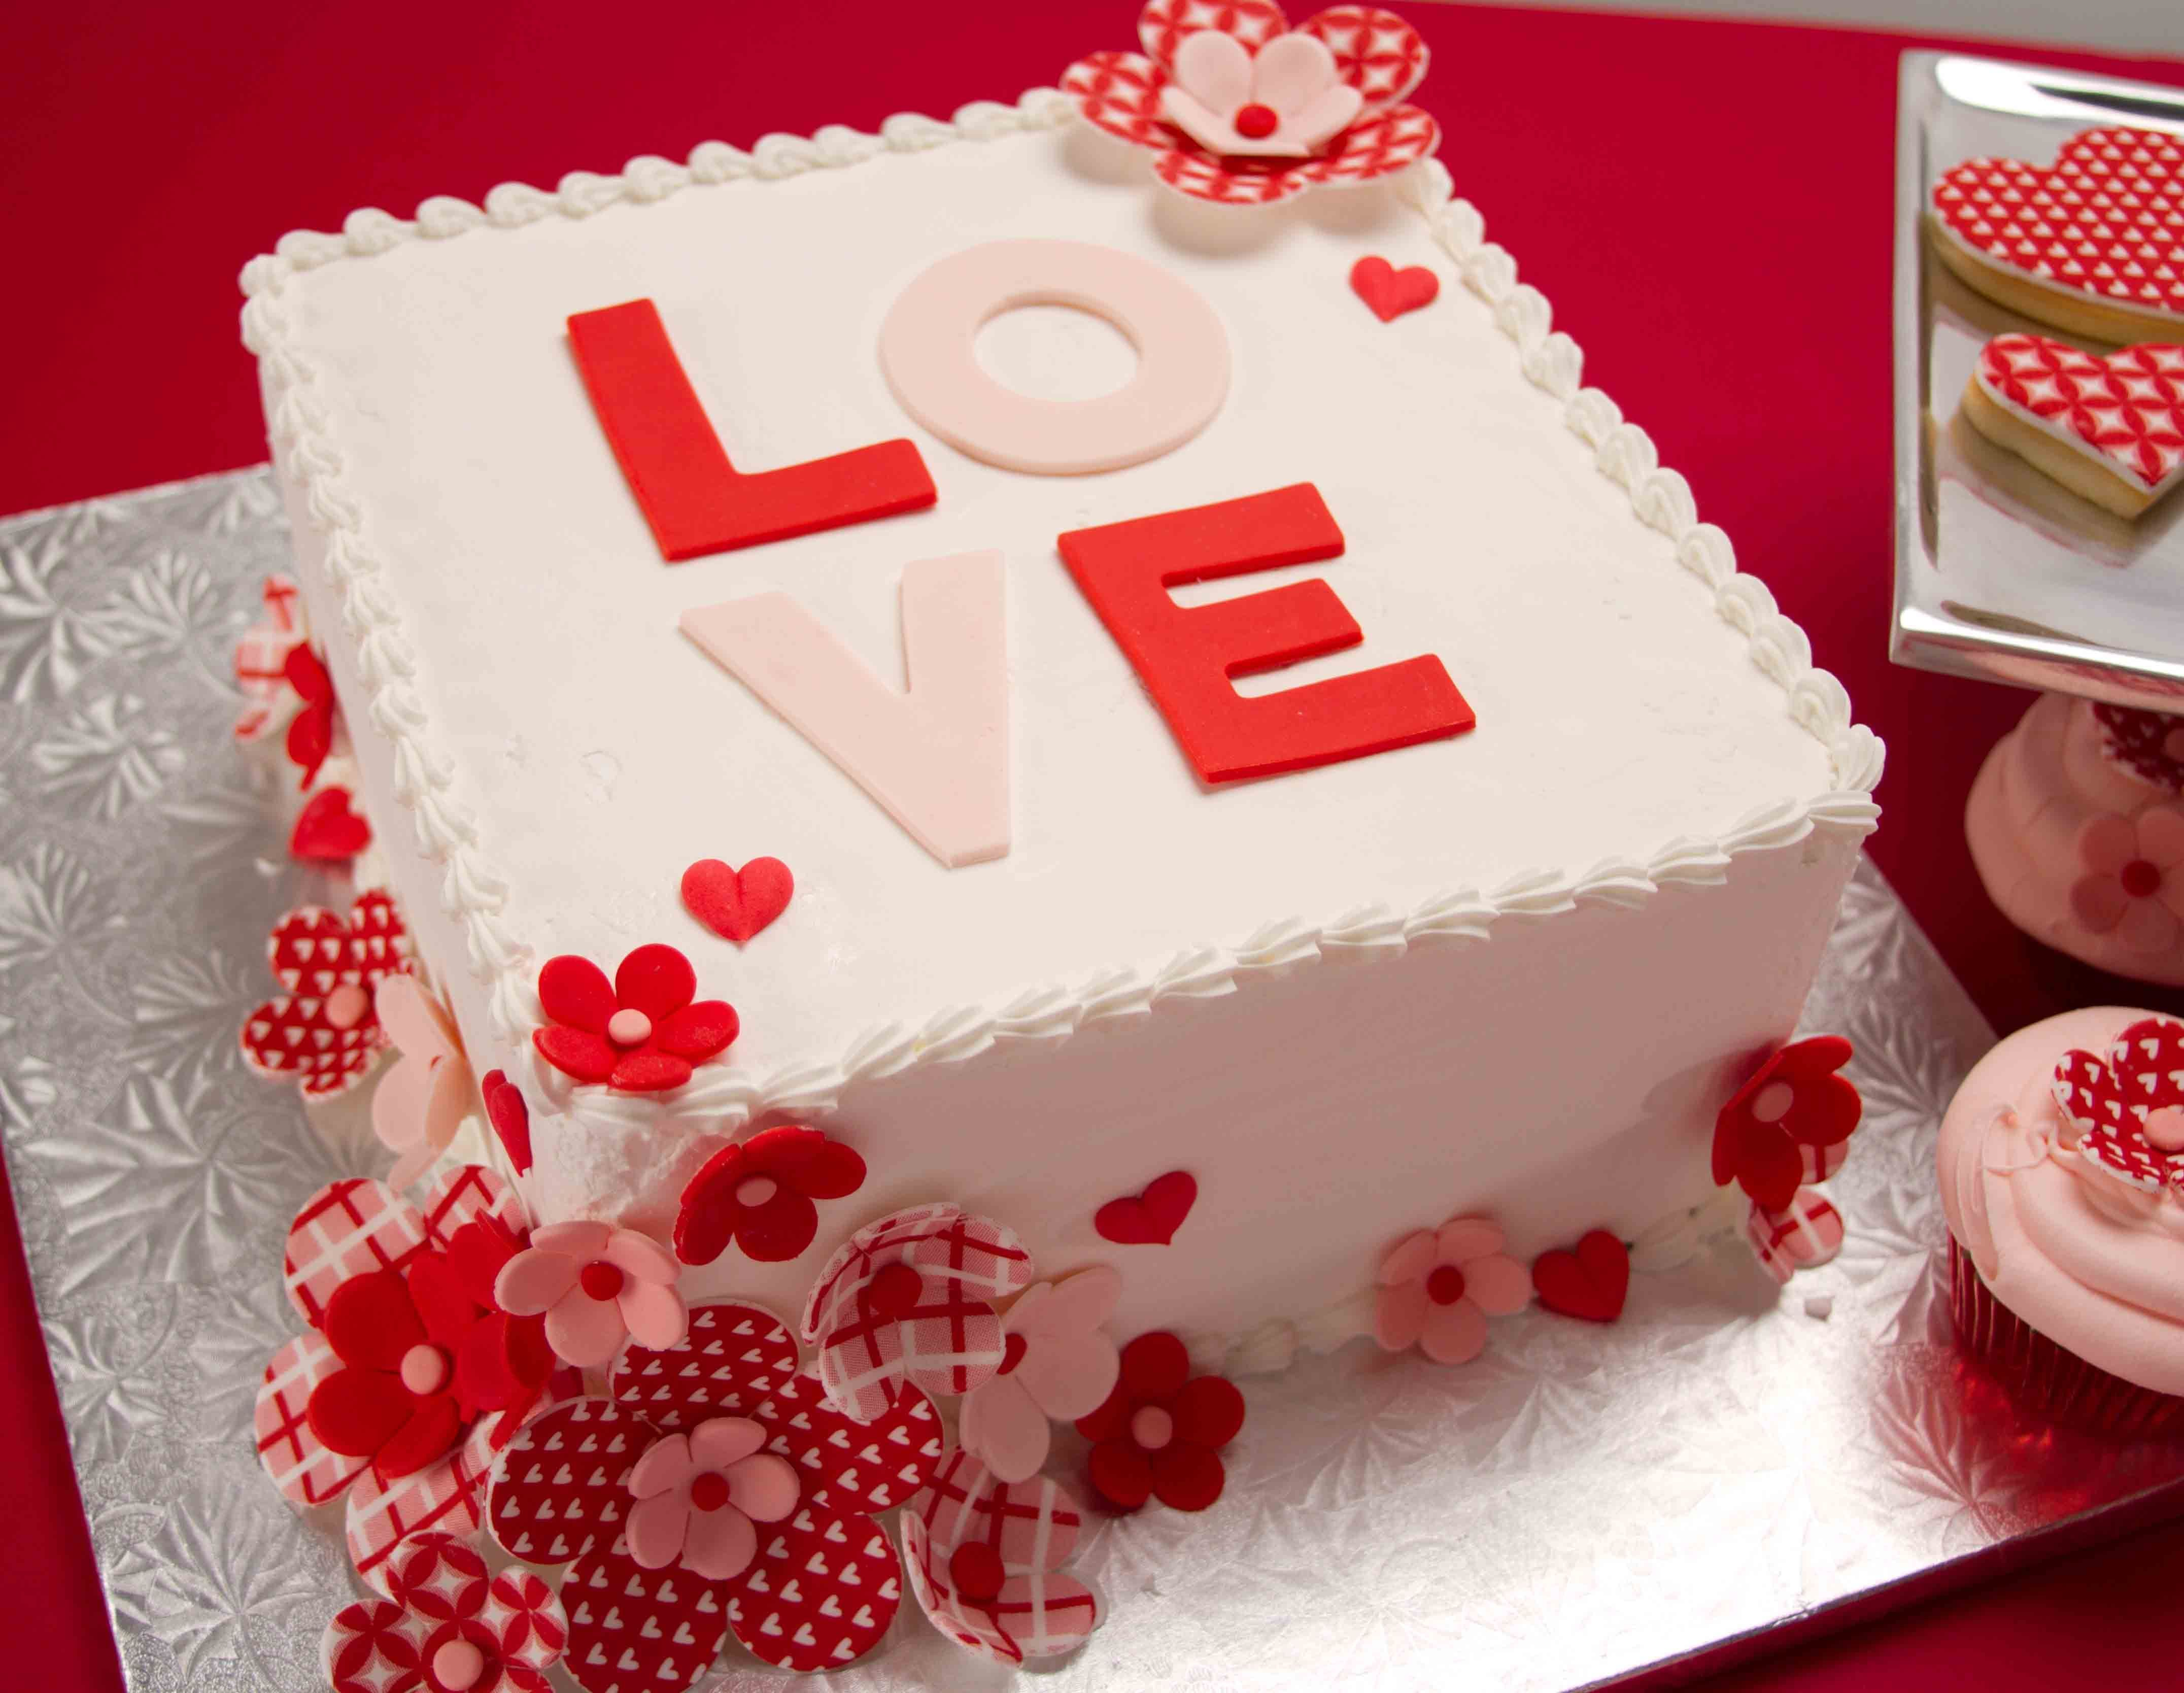 Beautiful Birthday Cake For Husband Wife Valentine S Day Or